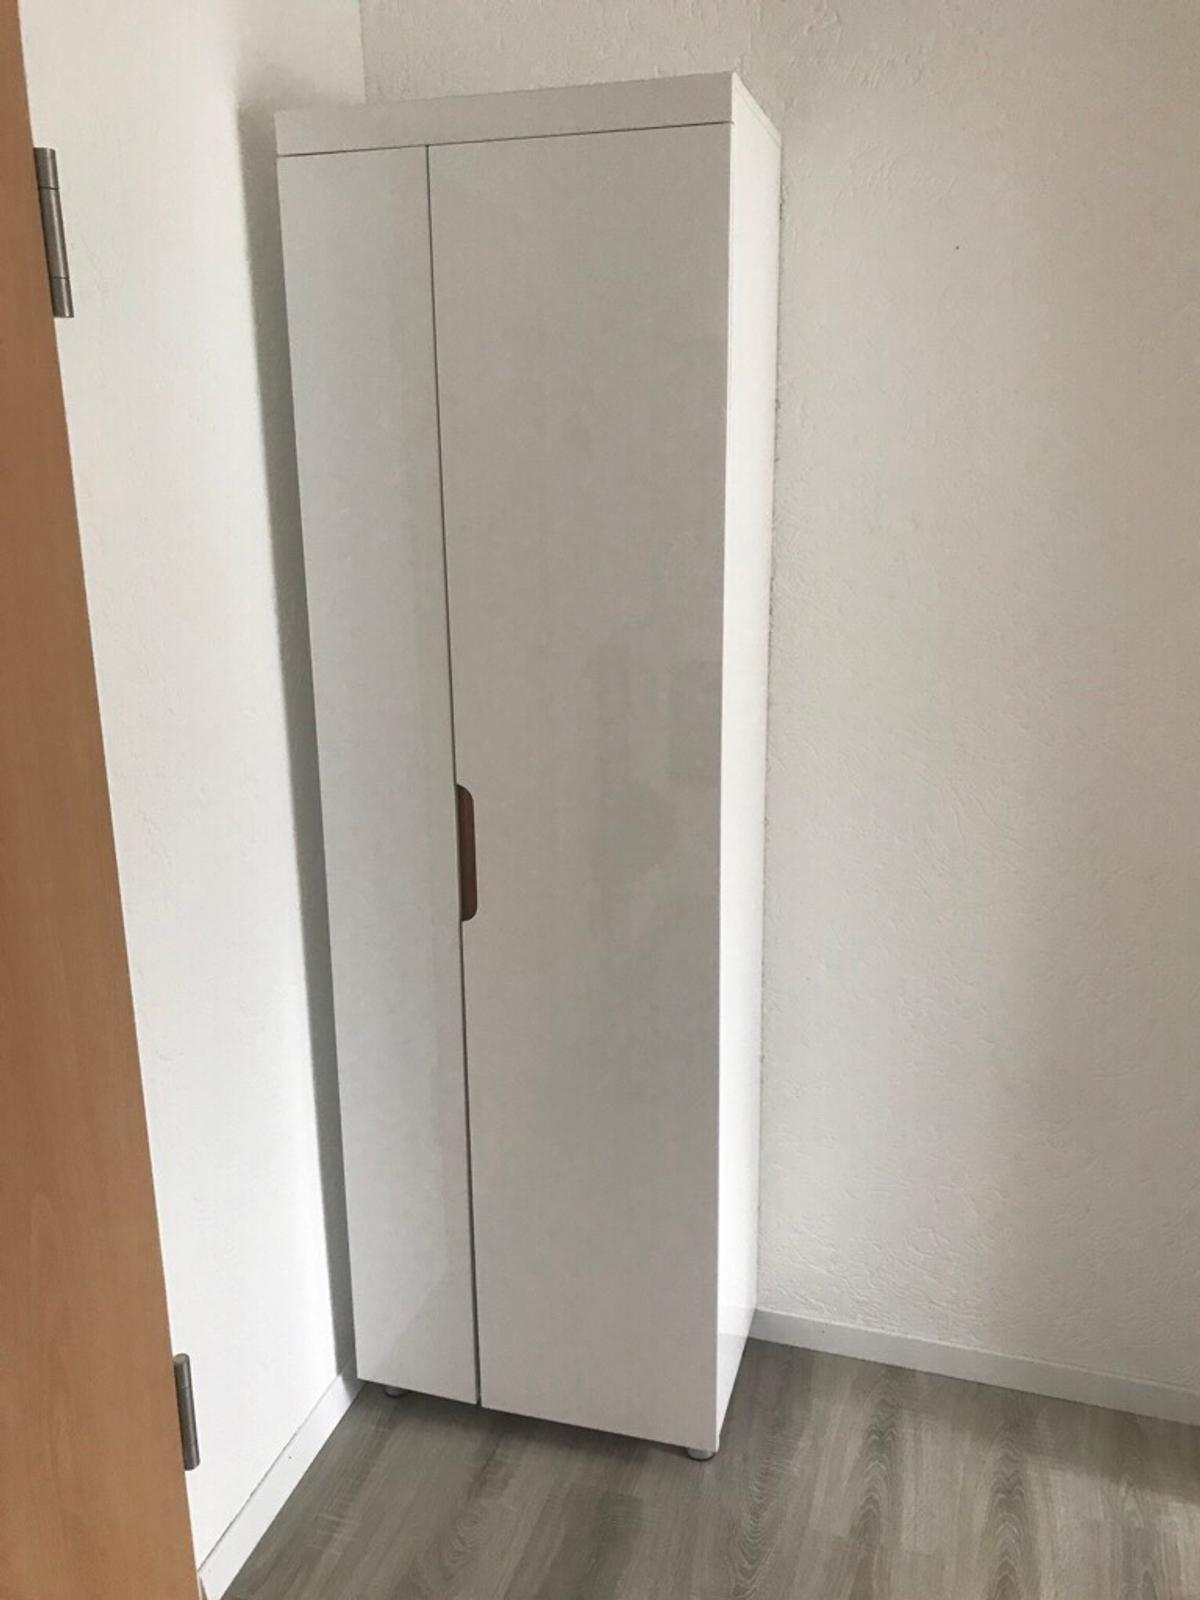 Garderobe Set Bank Spiegel Schrank Kommode In 51702 Bergneustadt For 150 00 For Sale Shpock